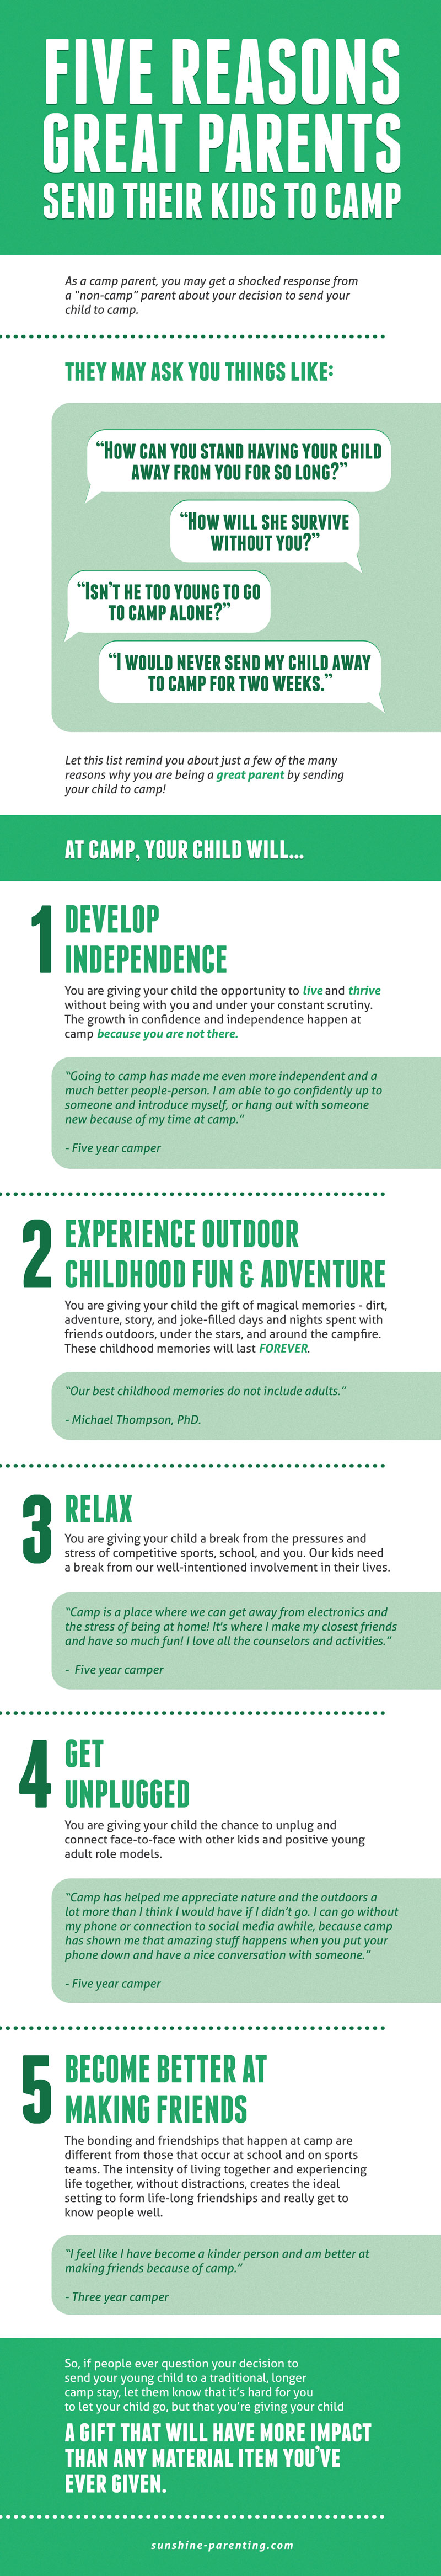 5 Reasons Great Parents Send their Kids to Camp